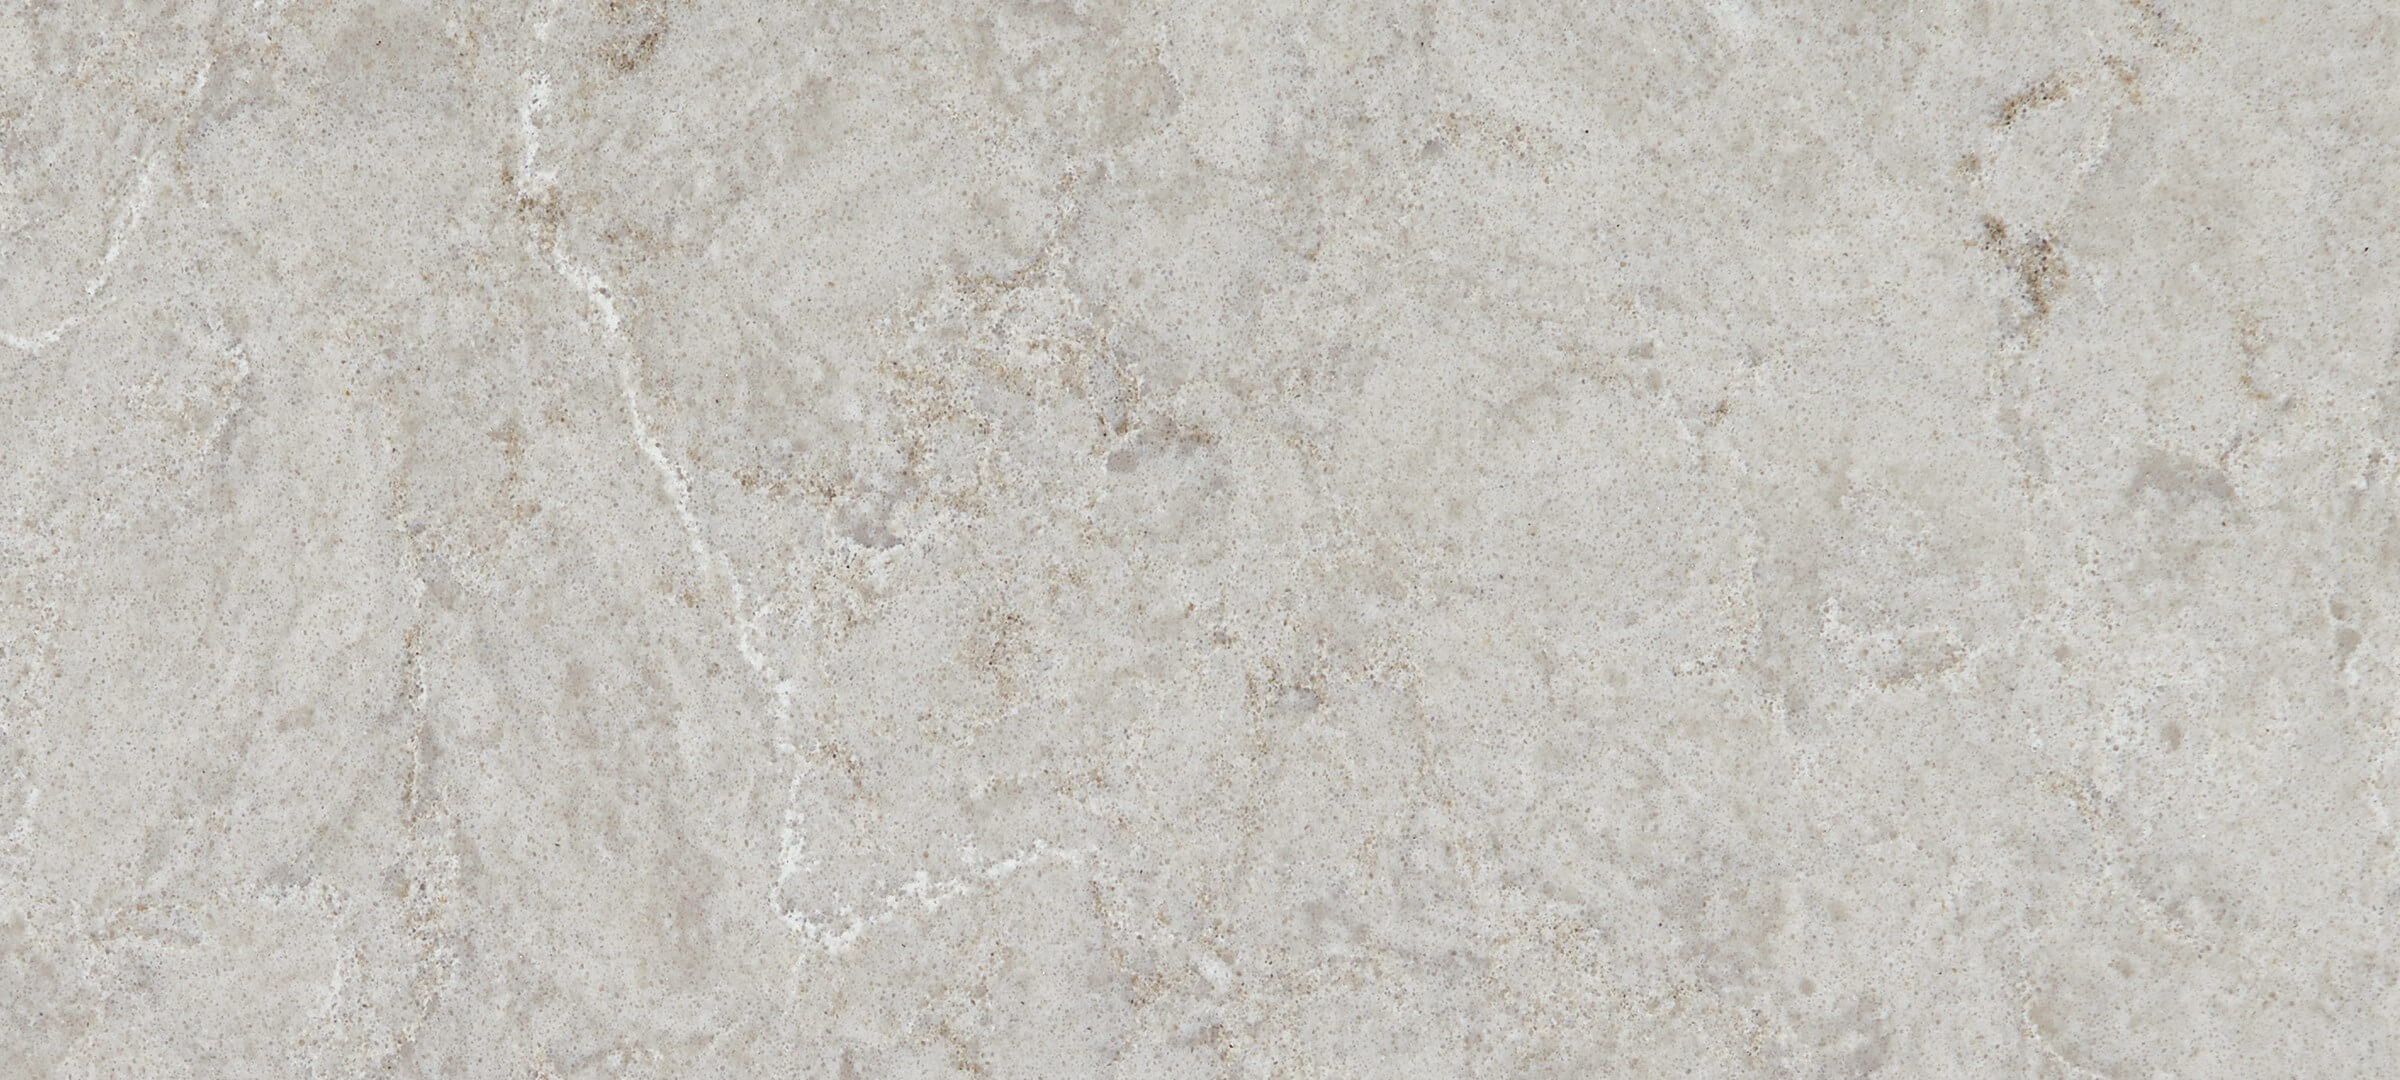 Bianco Drift Quartz Clarkston Stone Amp Tile Retail